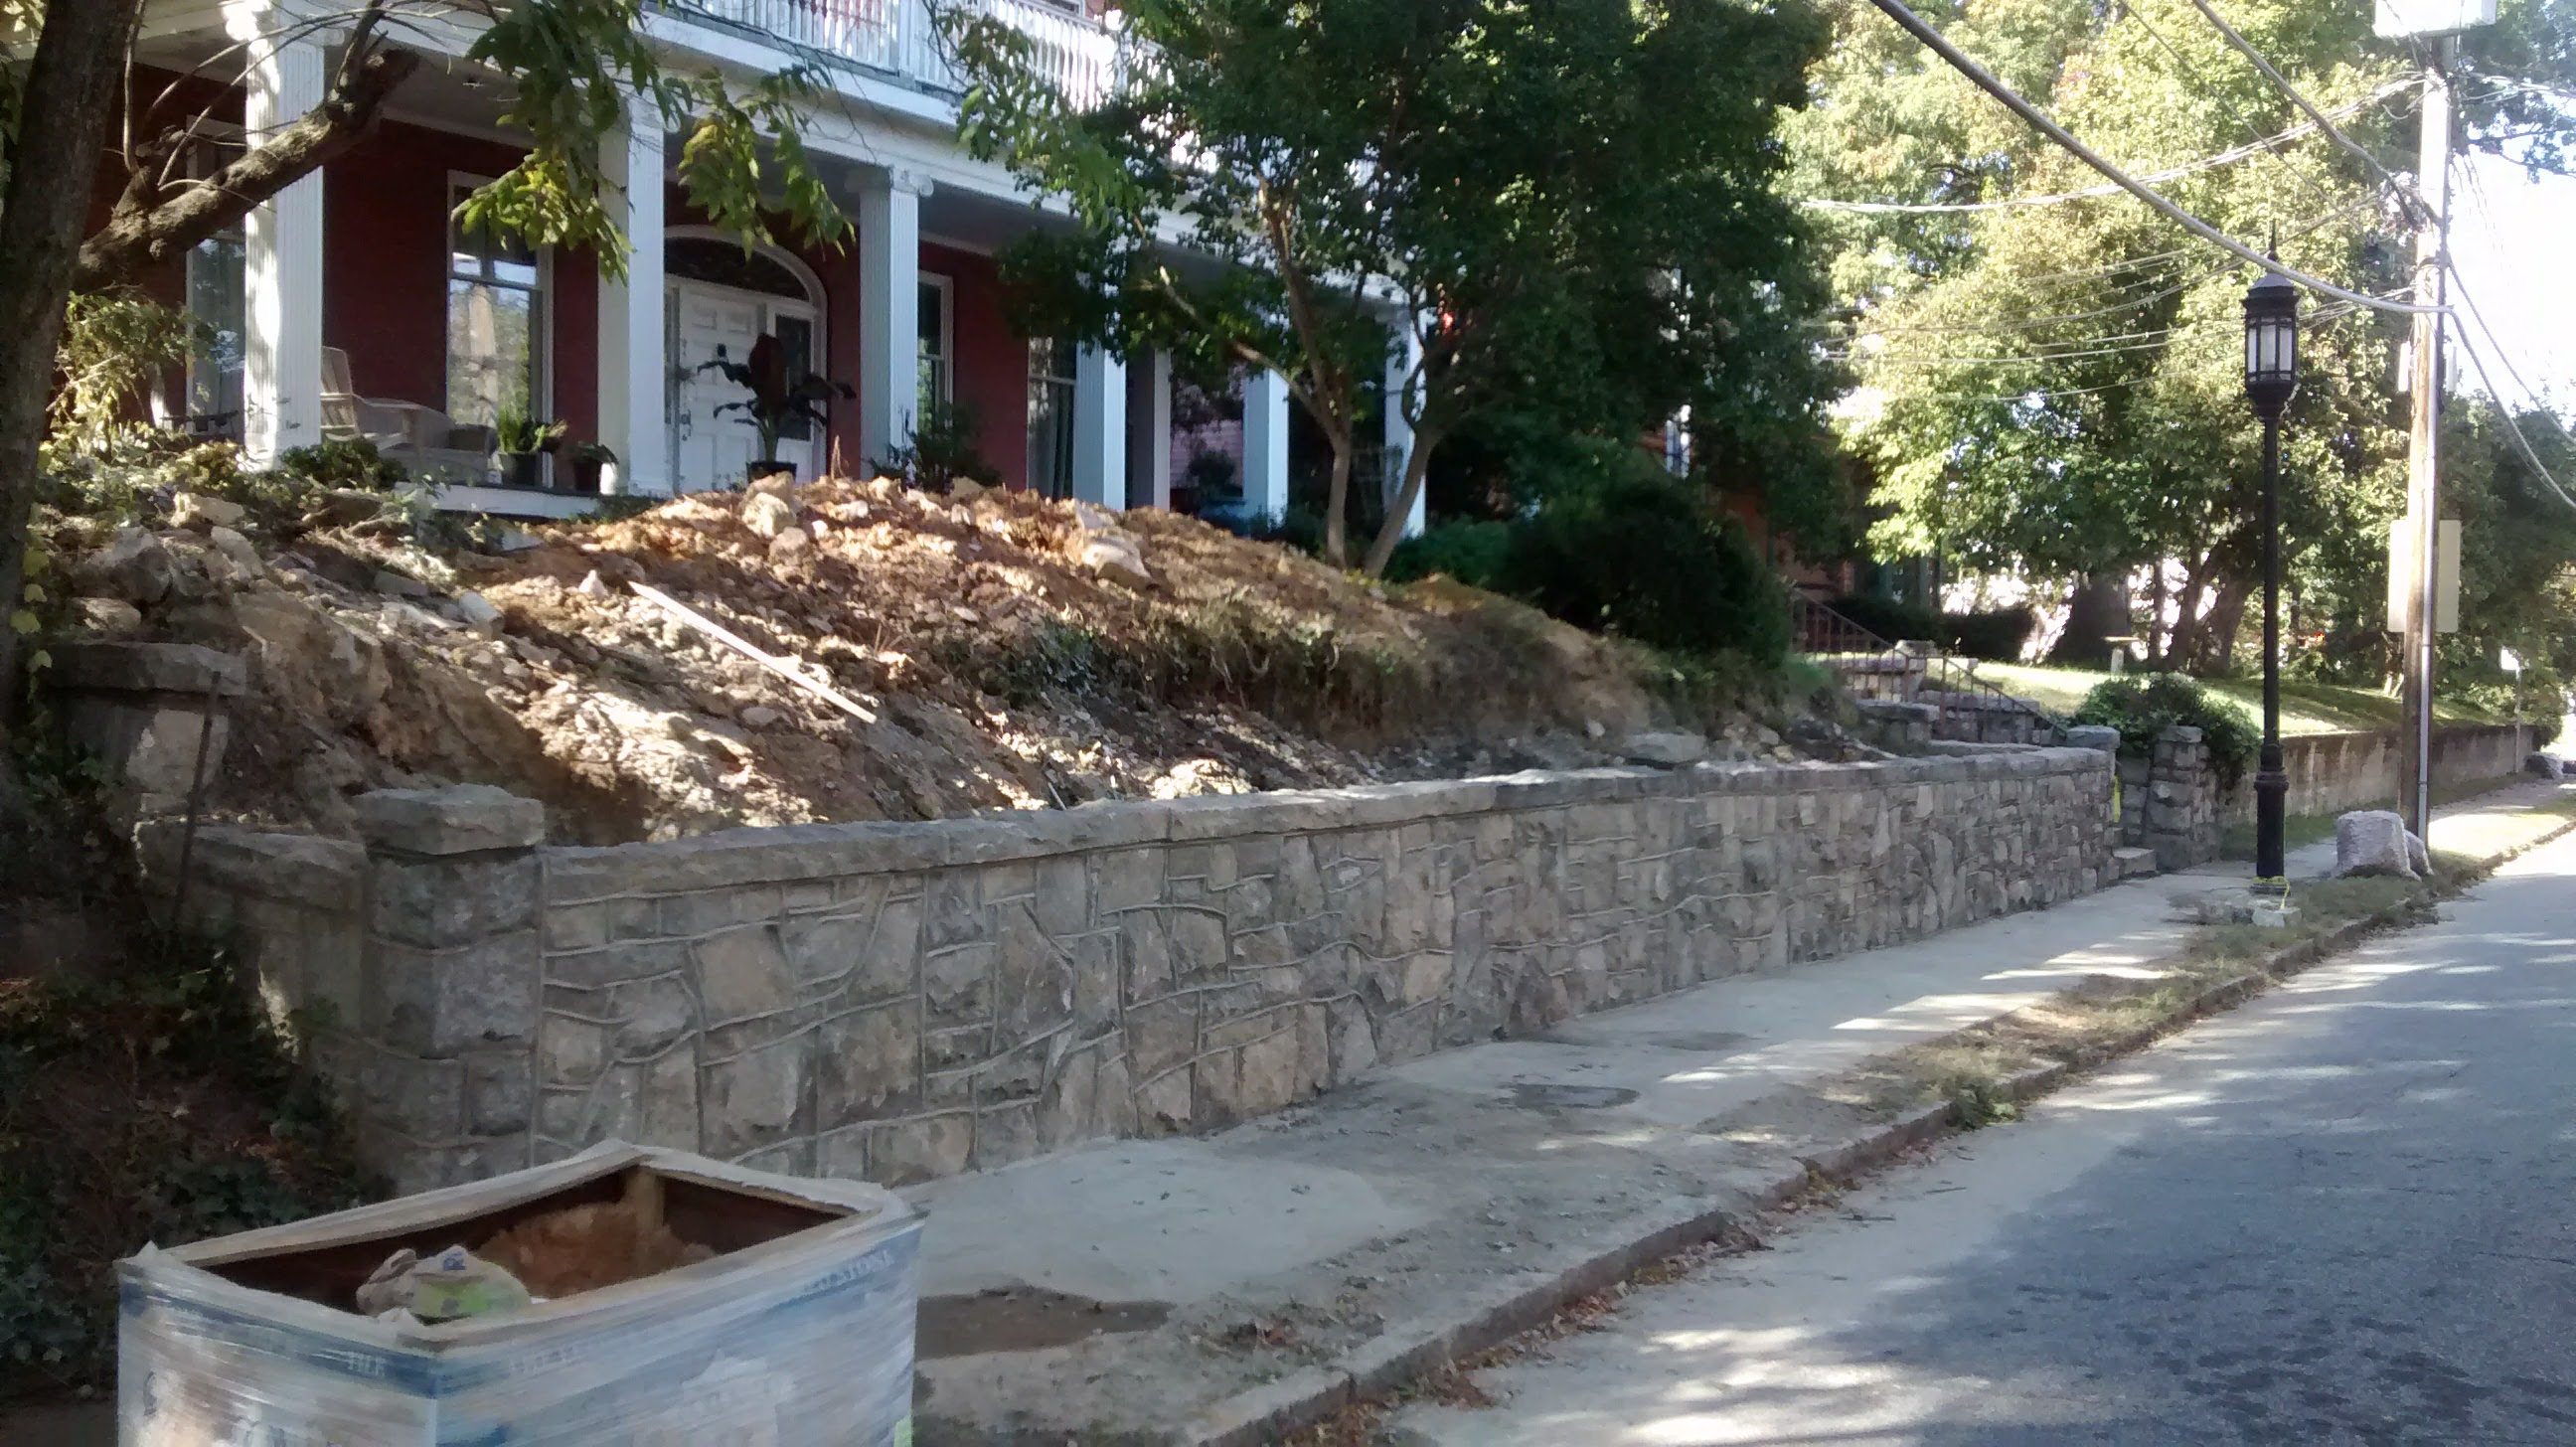 rebuilt wall at 110 south mendenhall, seen from the street